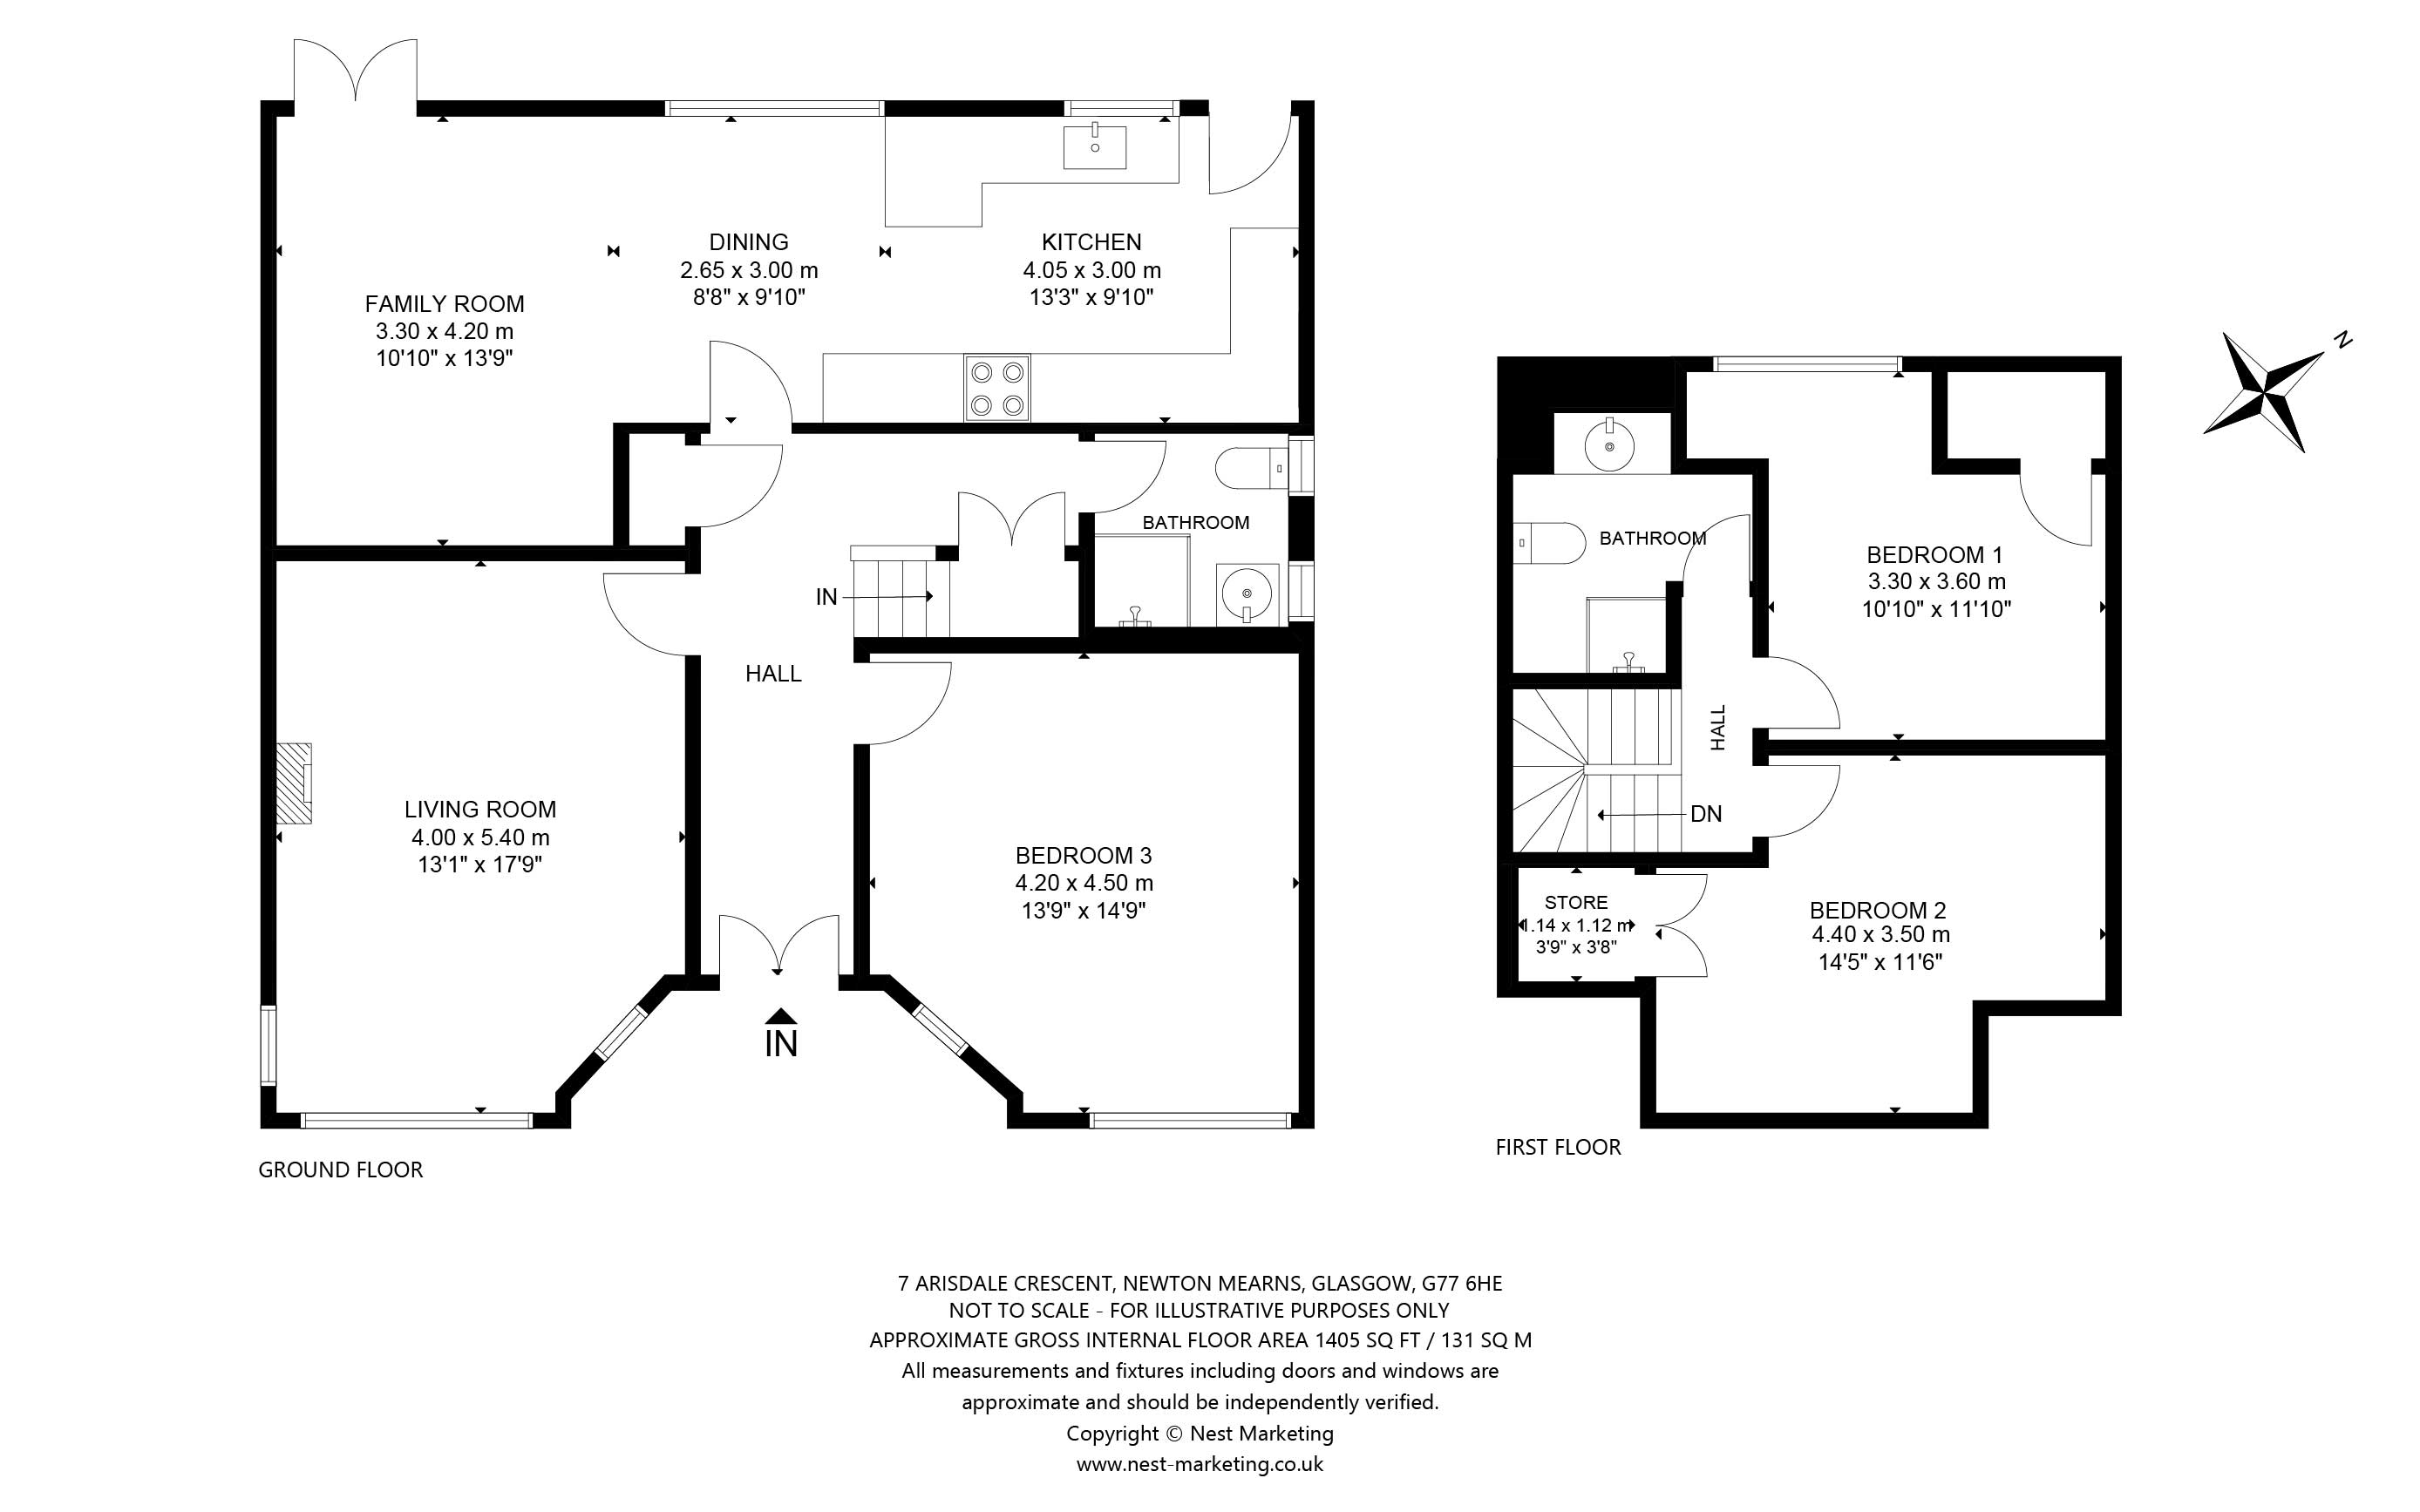 Floorplans for Arisdale Crescent, Newton Mearns, Glasgow, G77